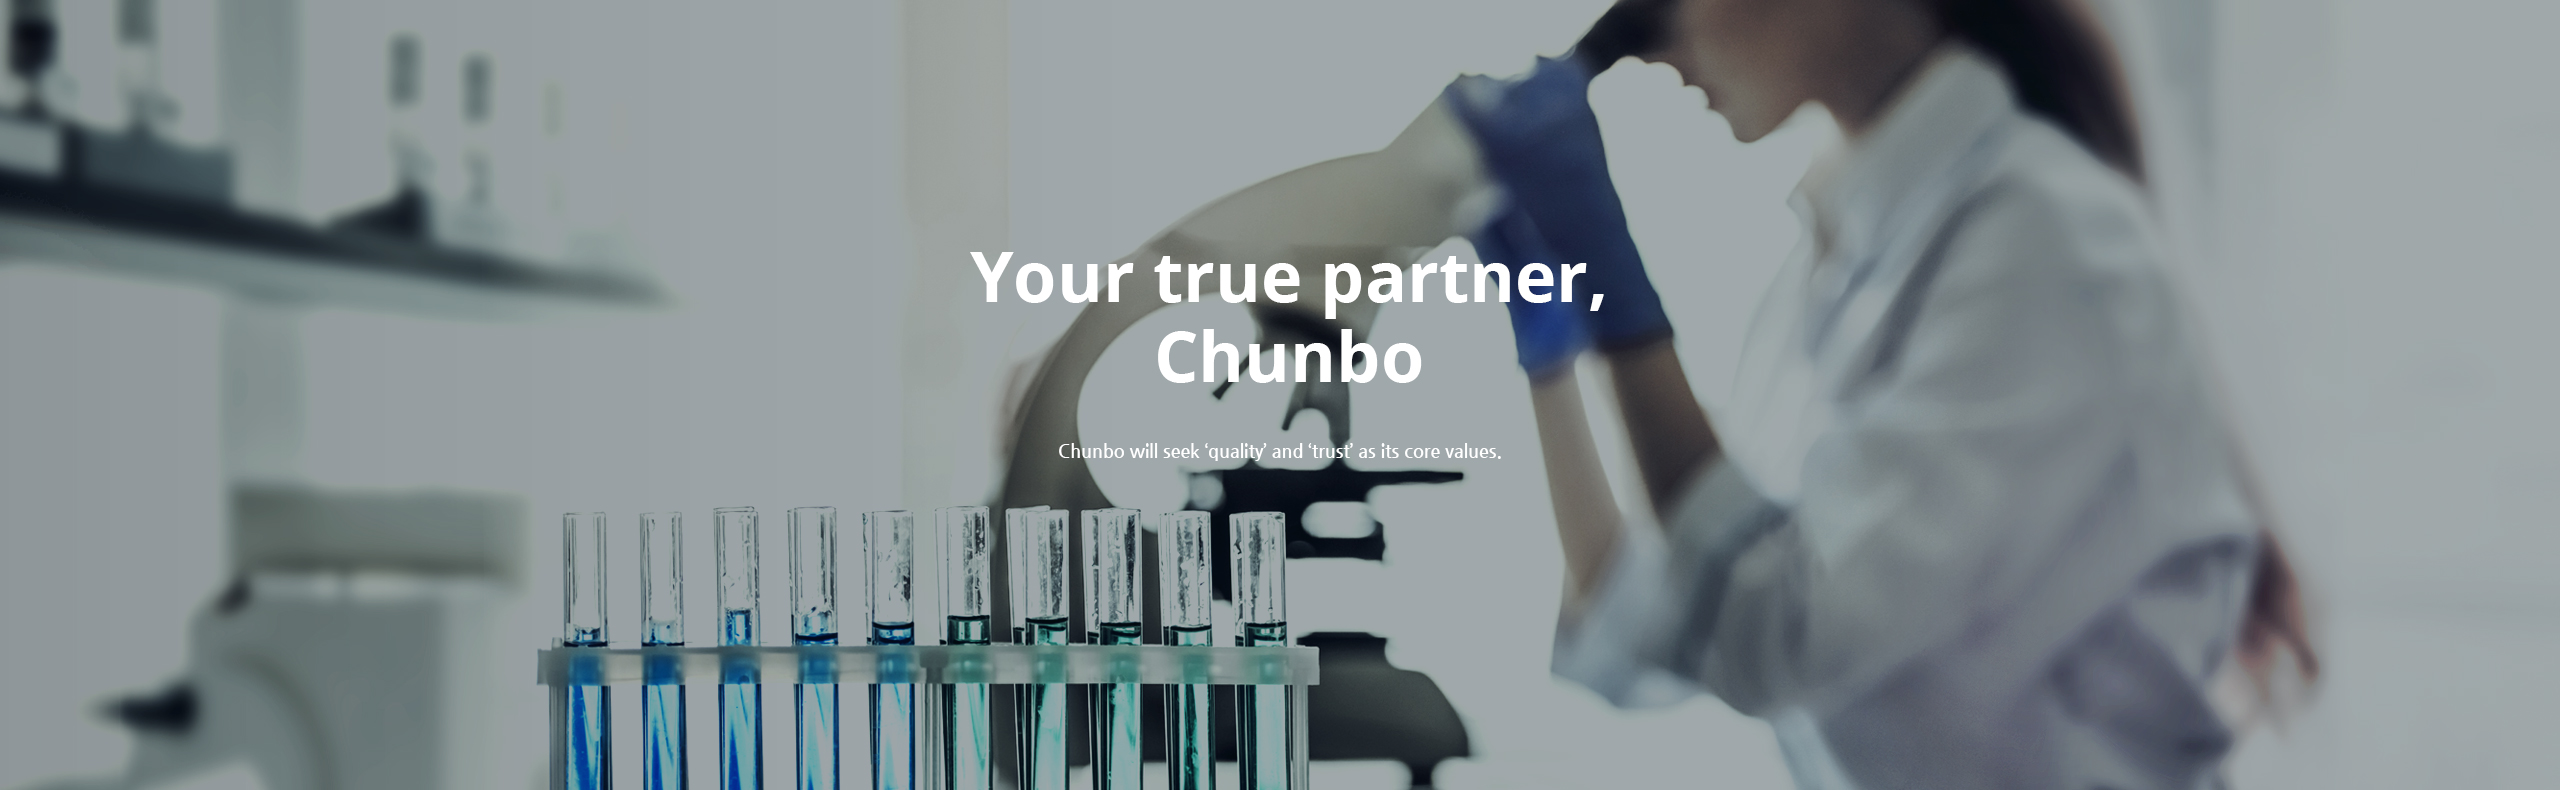 Your true partner, Chunbo